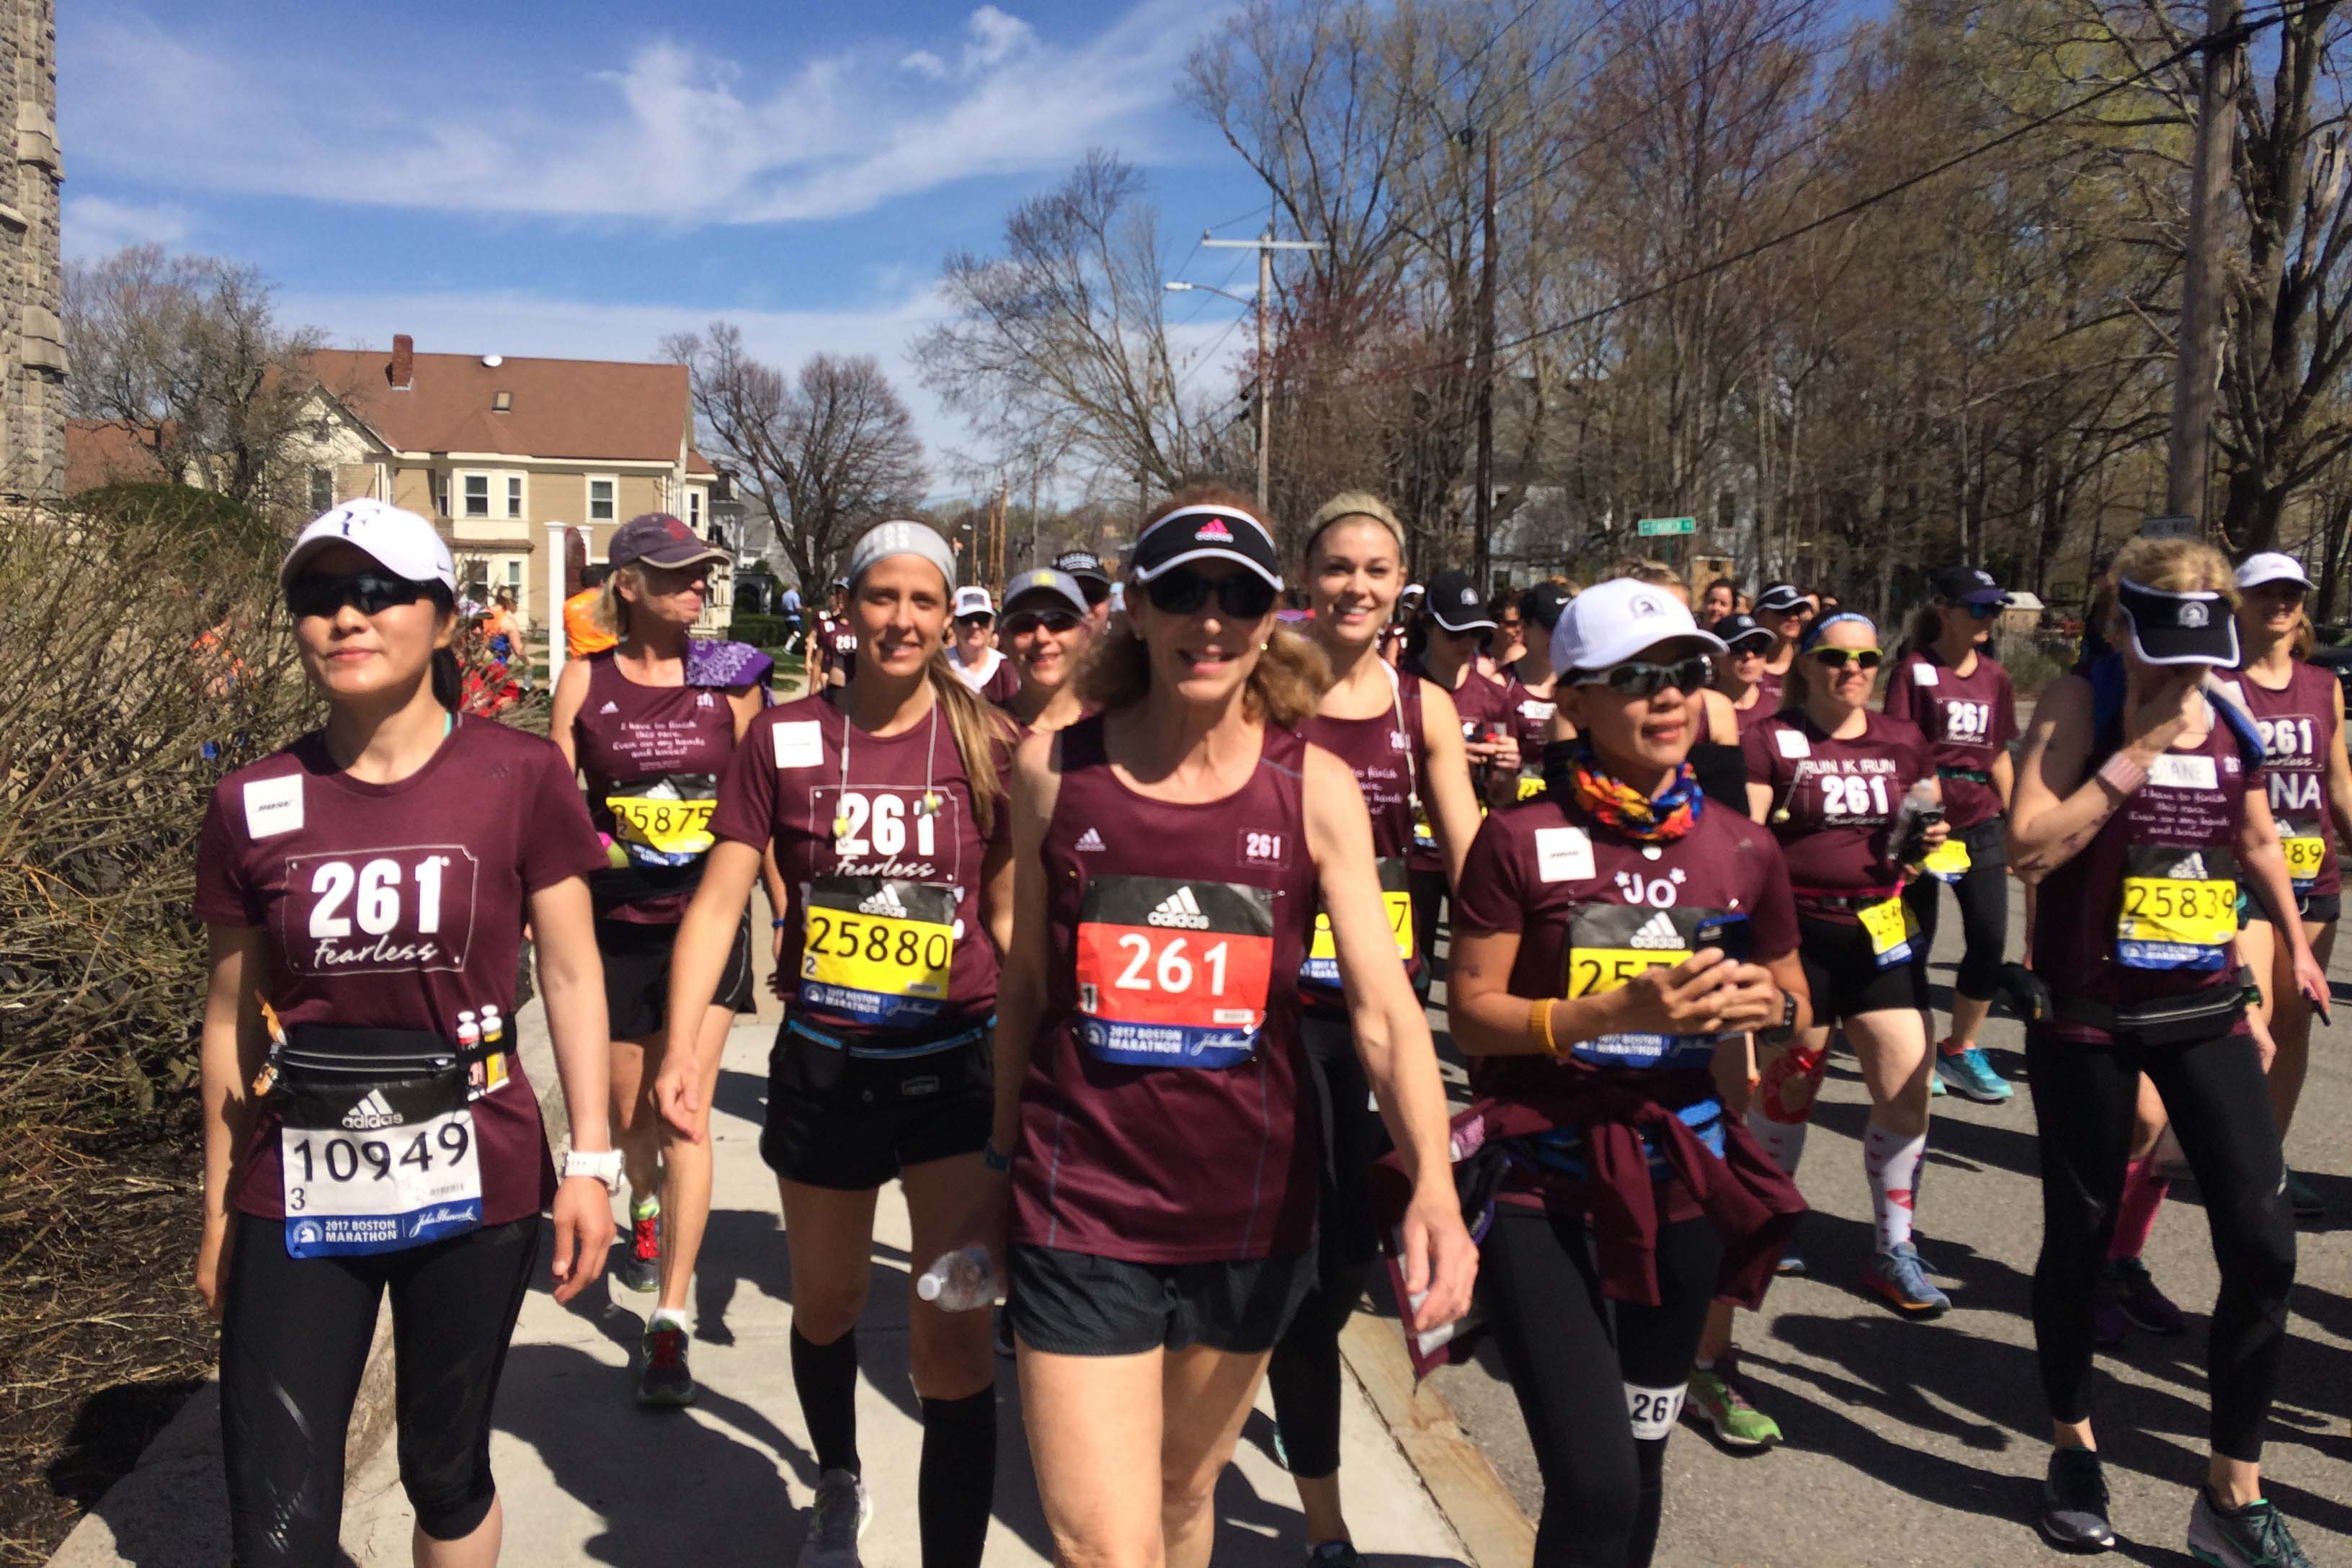 Event - 261 Fearless running club